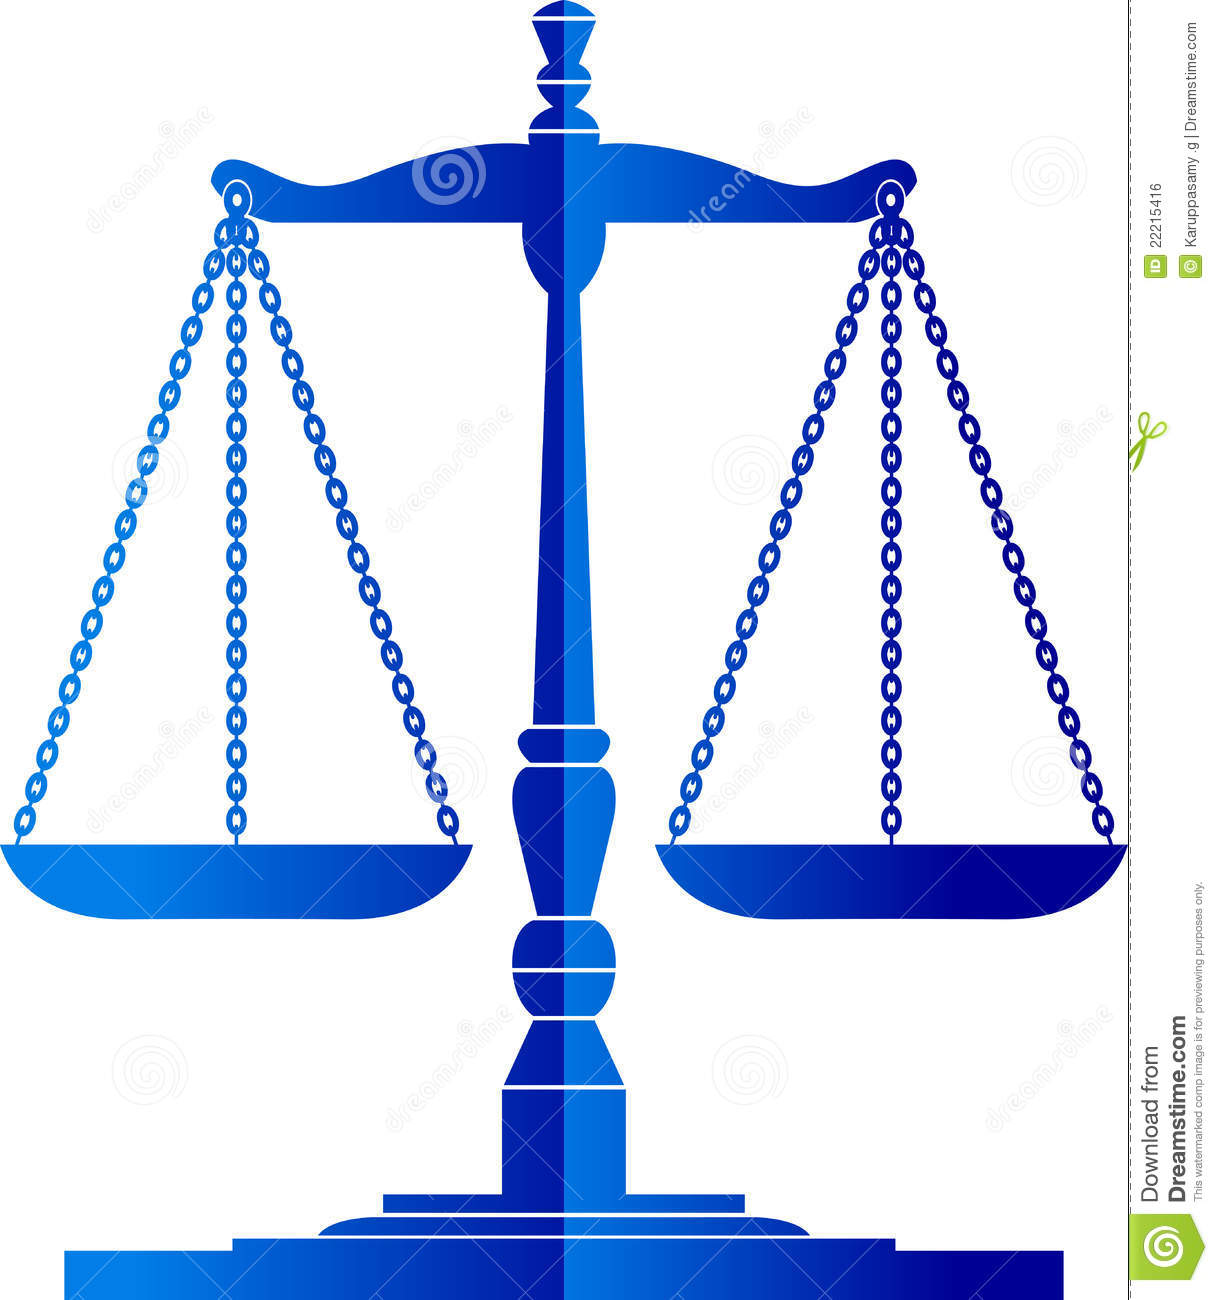 Clip 722143 Stock Footage D Illustration Of Balancing Brass Weight Scales Isolated On White Background as well One World Many Stories Globe besides 420 Smiley Face Clock Necklace additionally Scales Of Justice 1430 as well Royalty Free Stock Image Justice Scales Image22215416. on clipart scale of justice 1